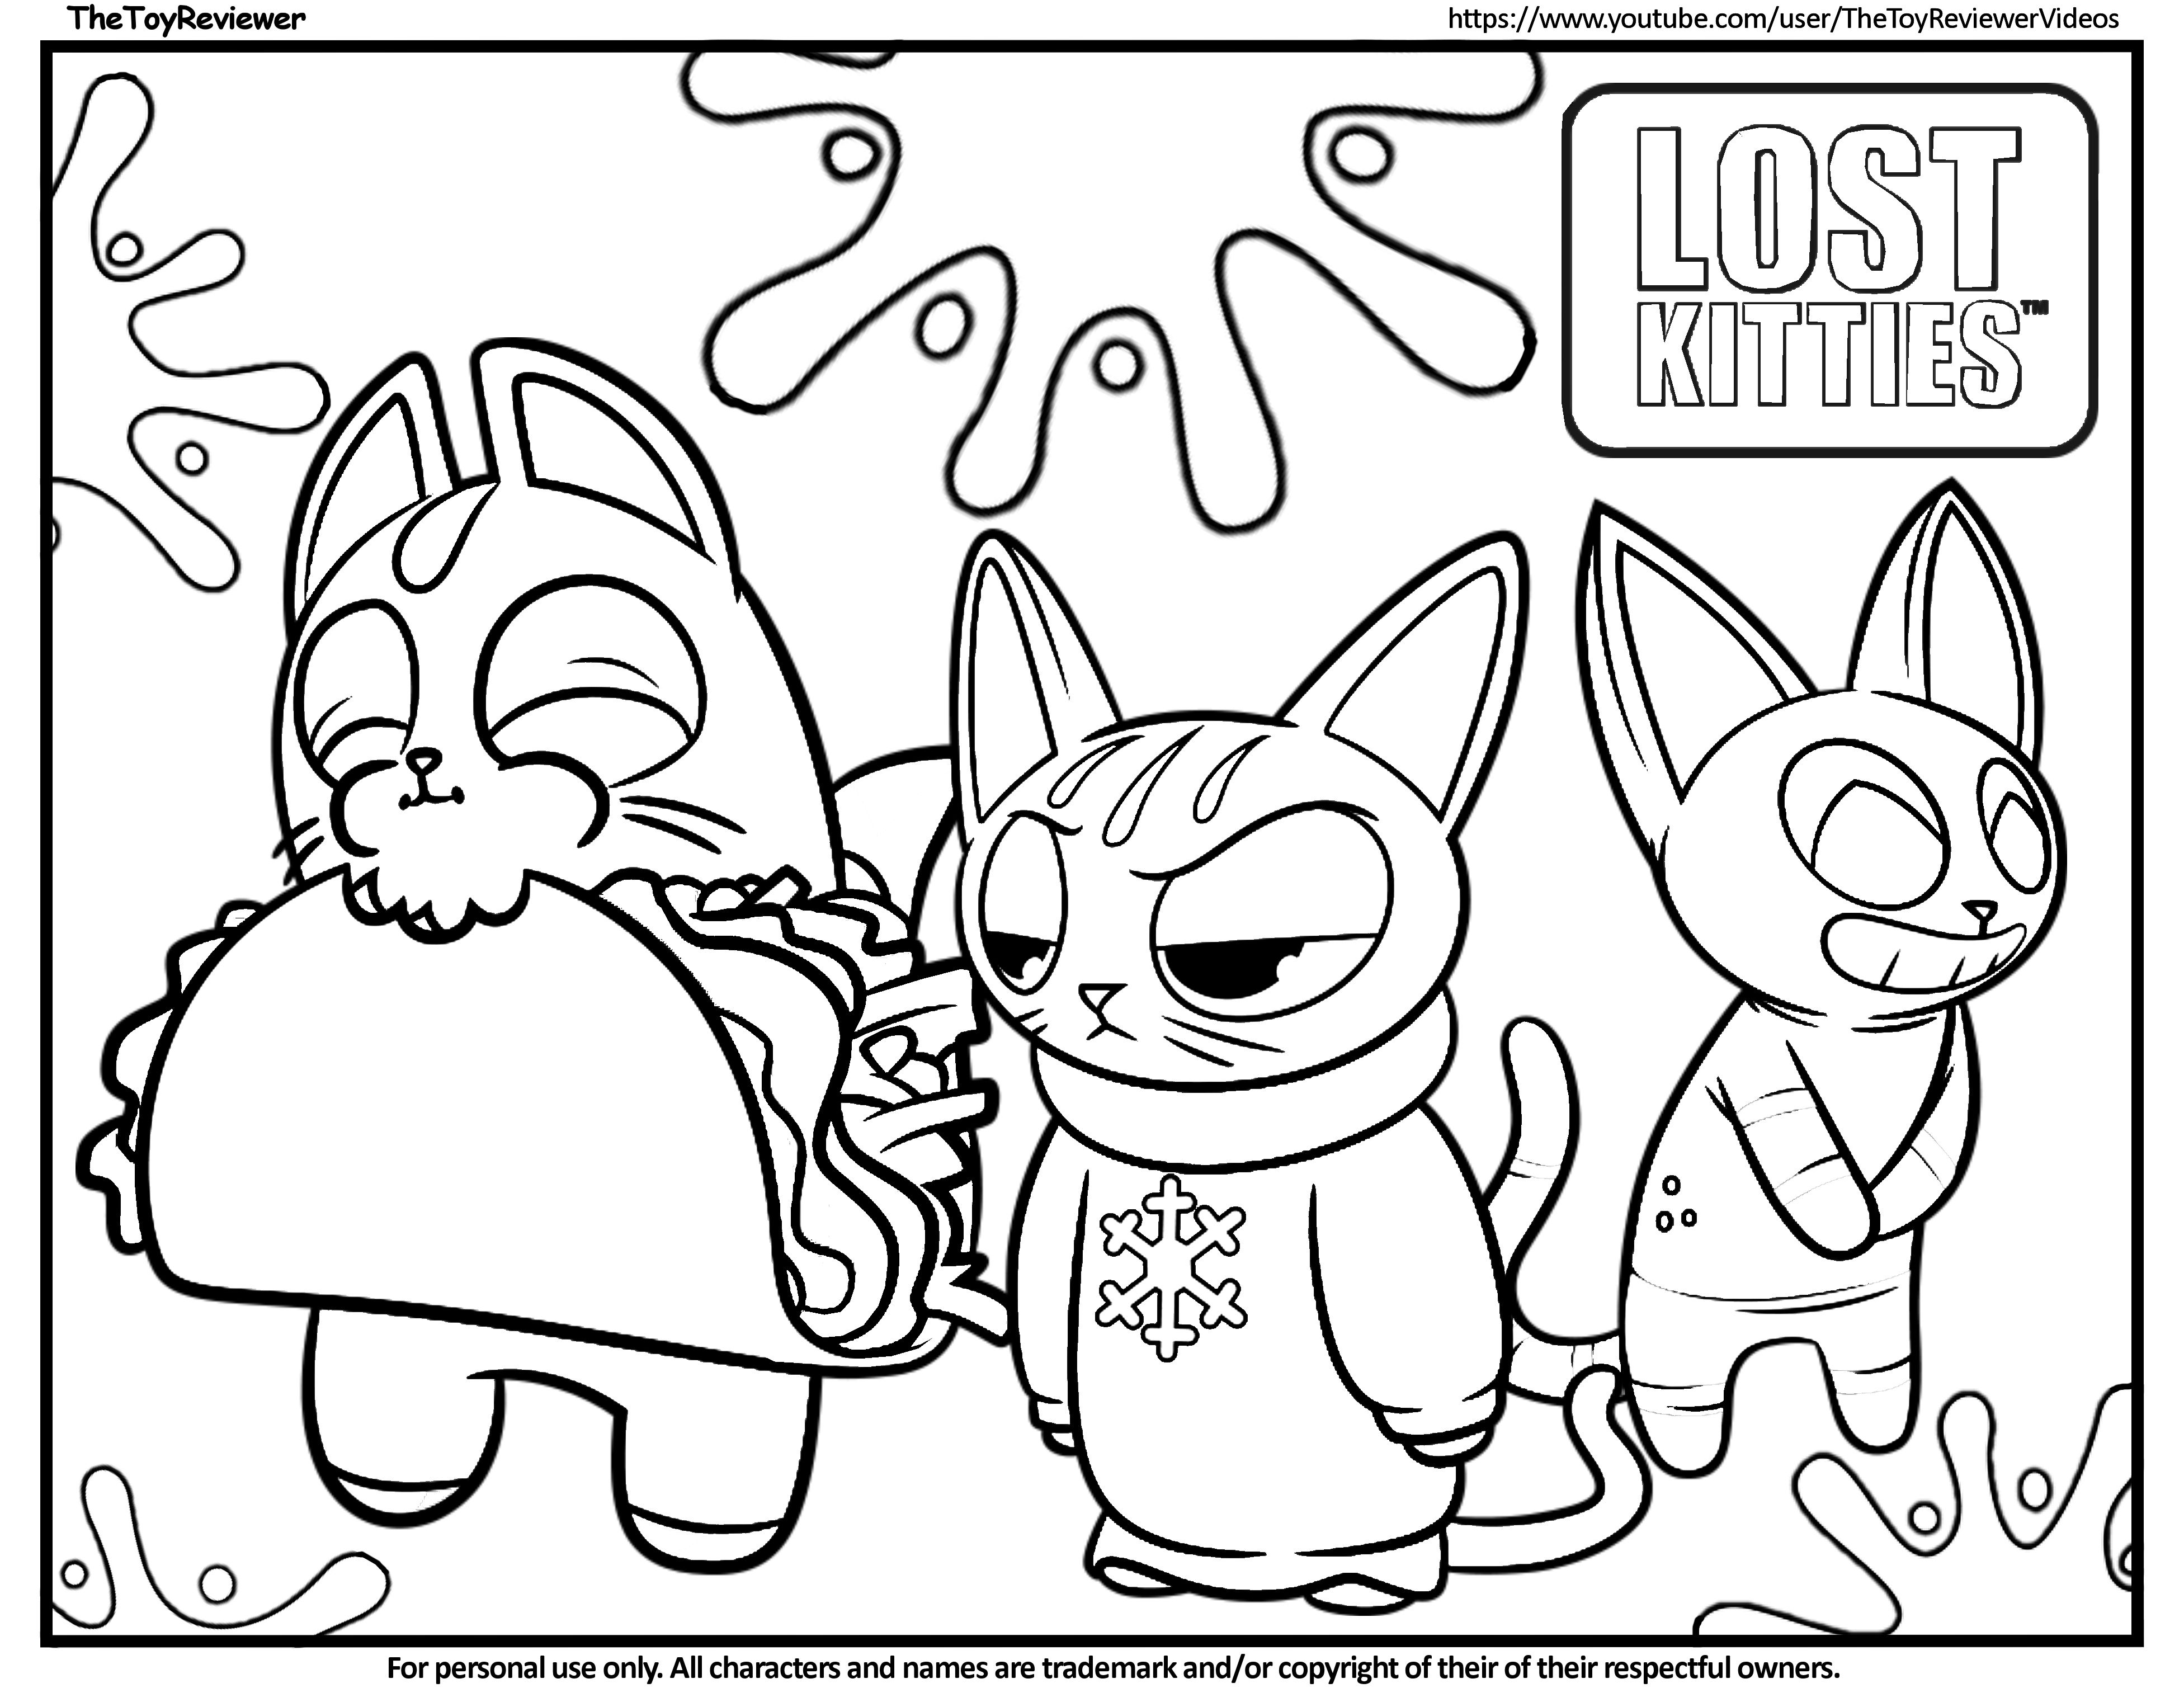 Here Is The Lost Kitties Coloring Page Click The Picture To See